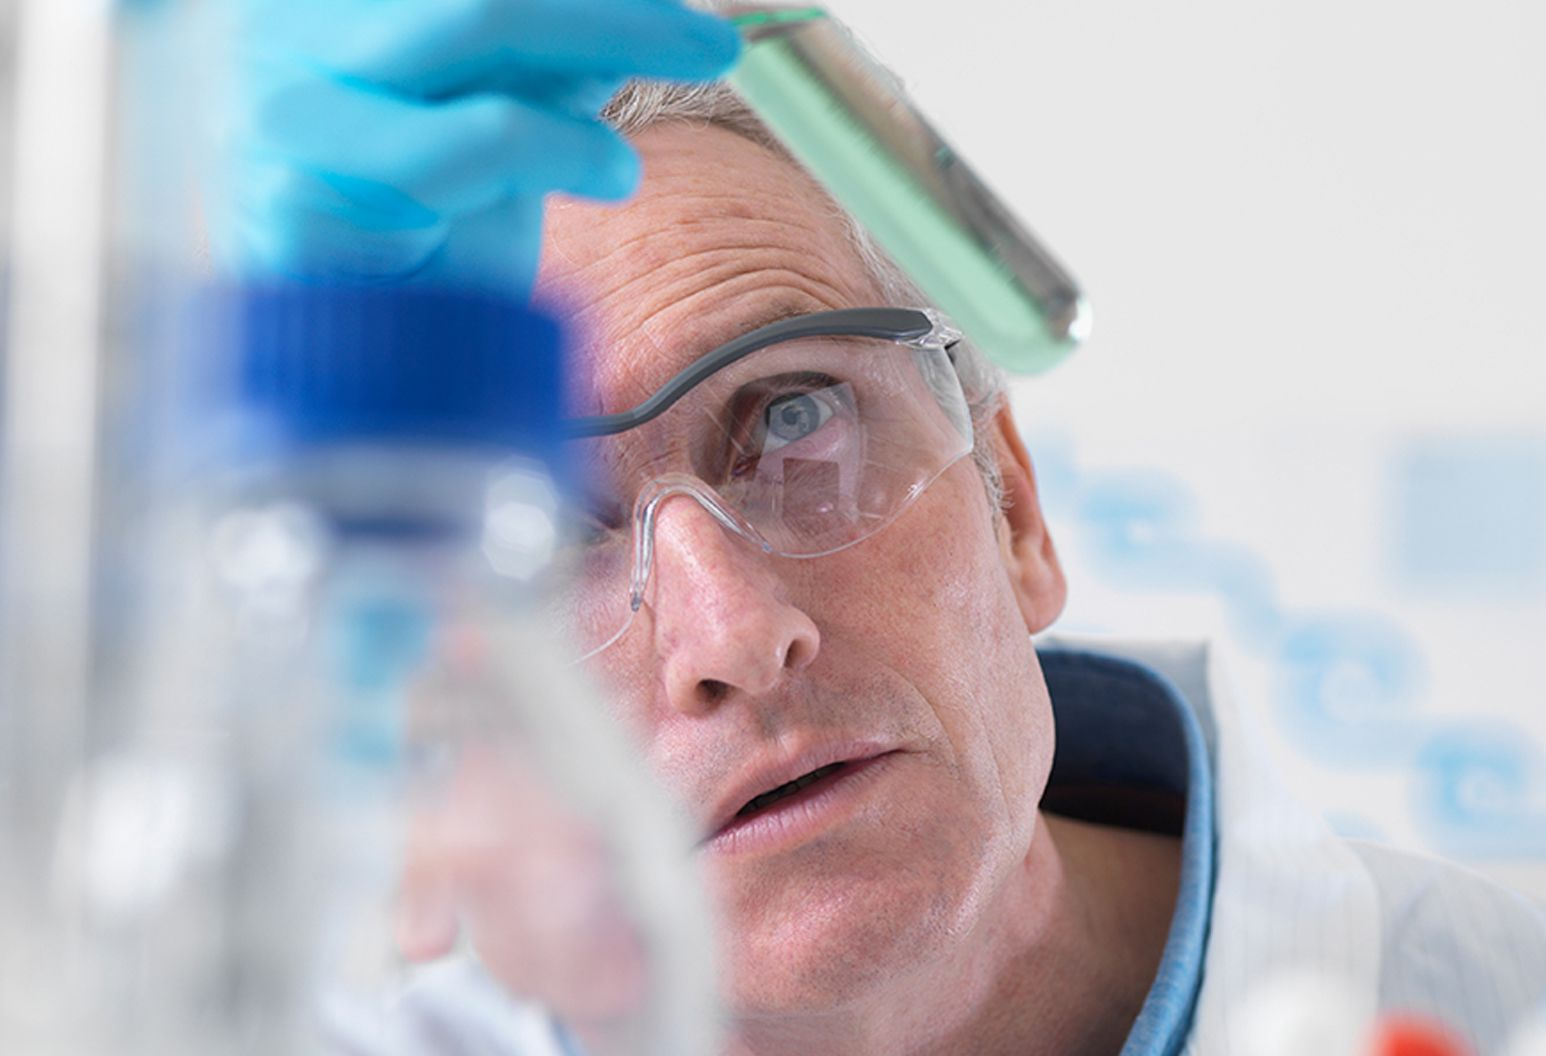 male researcher in safety glasses, examining a test tube